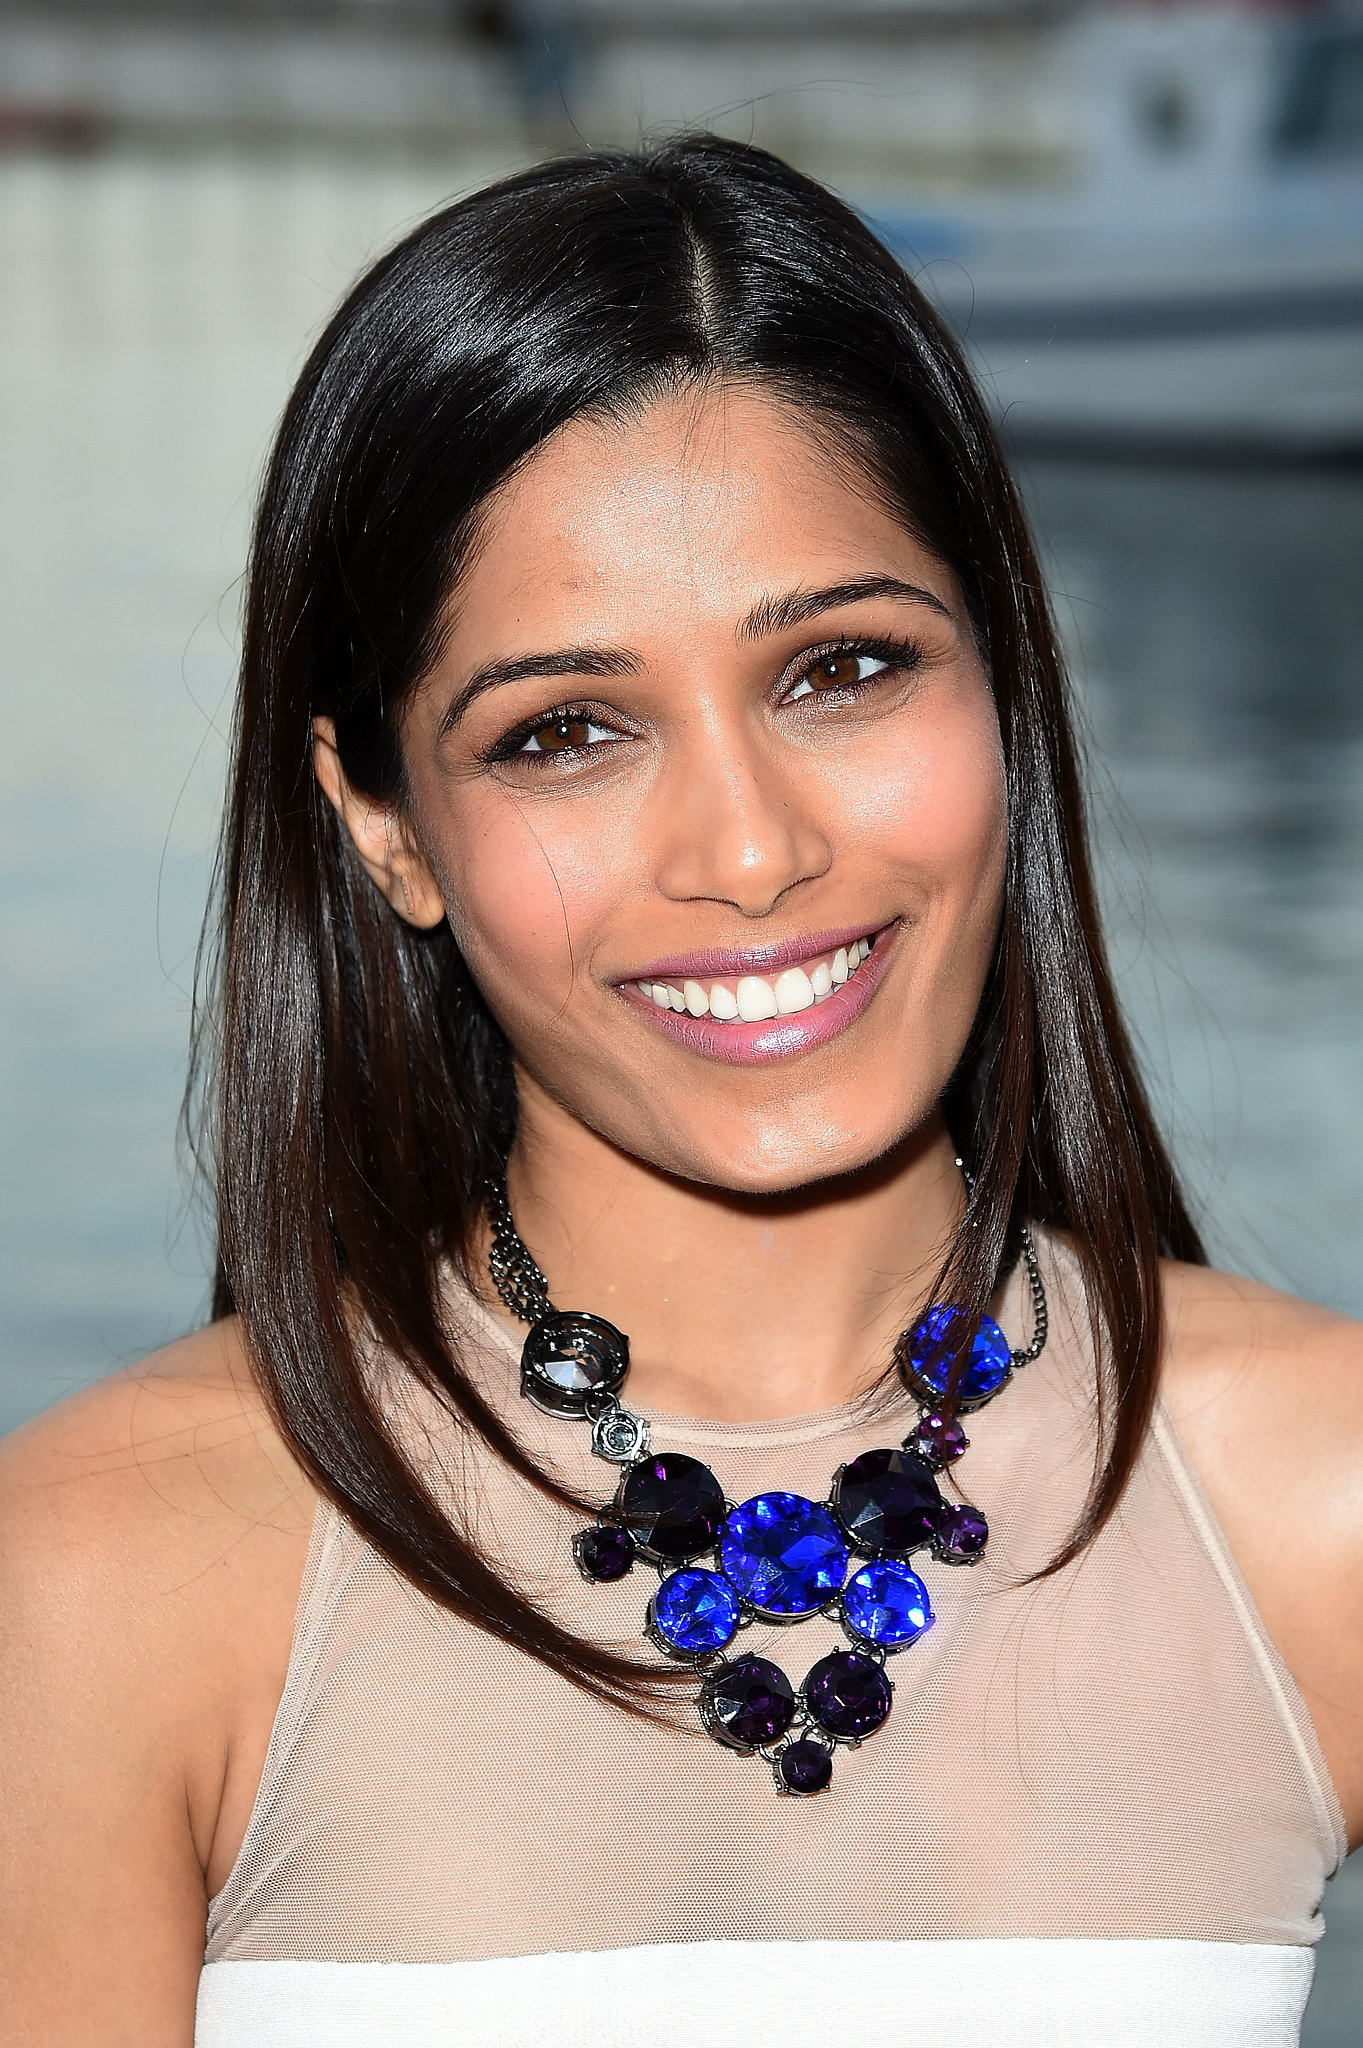 High Resolution Wallpaper | Freida Pinto 1363x2048 px